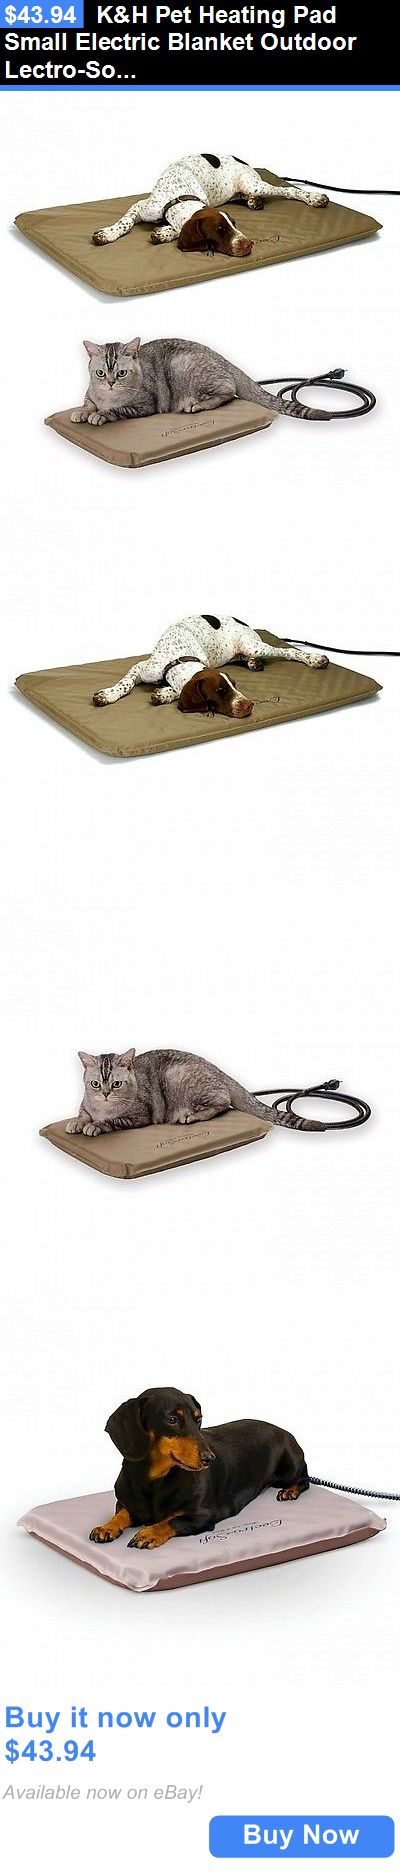 Pet Supplies: Kandh Pet Heating Pad Small Electric Blanket Outdoor Lectro-Soft Cover Dog Cat New BUY IT NOW ONLY: $43.94